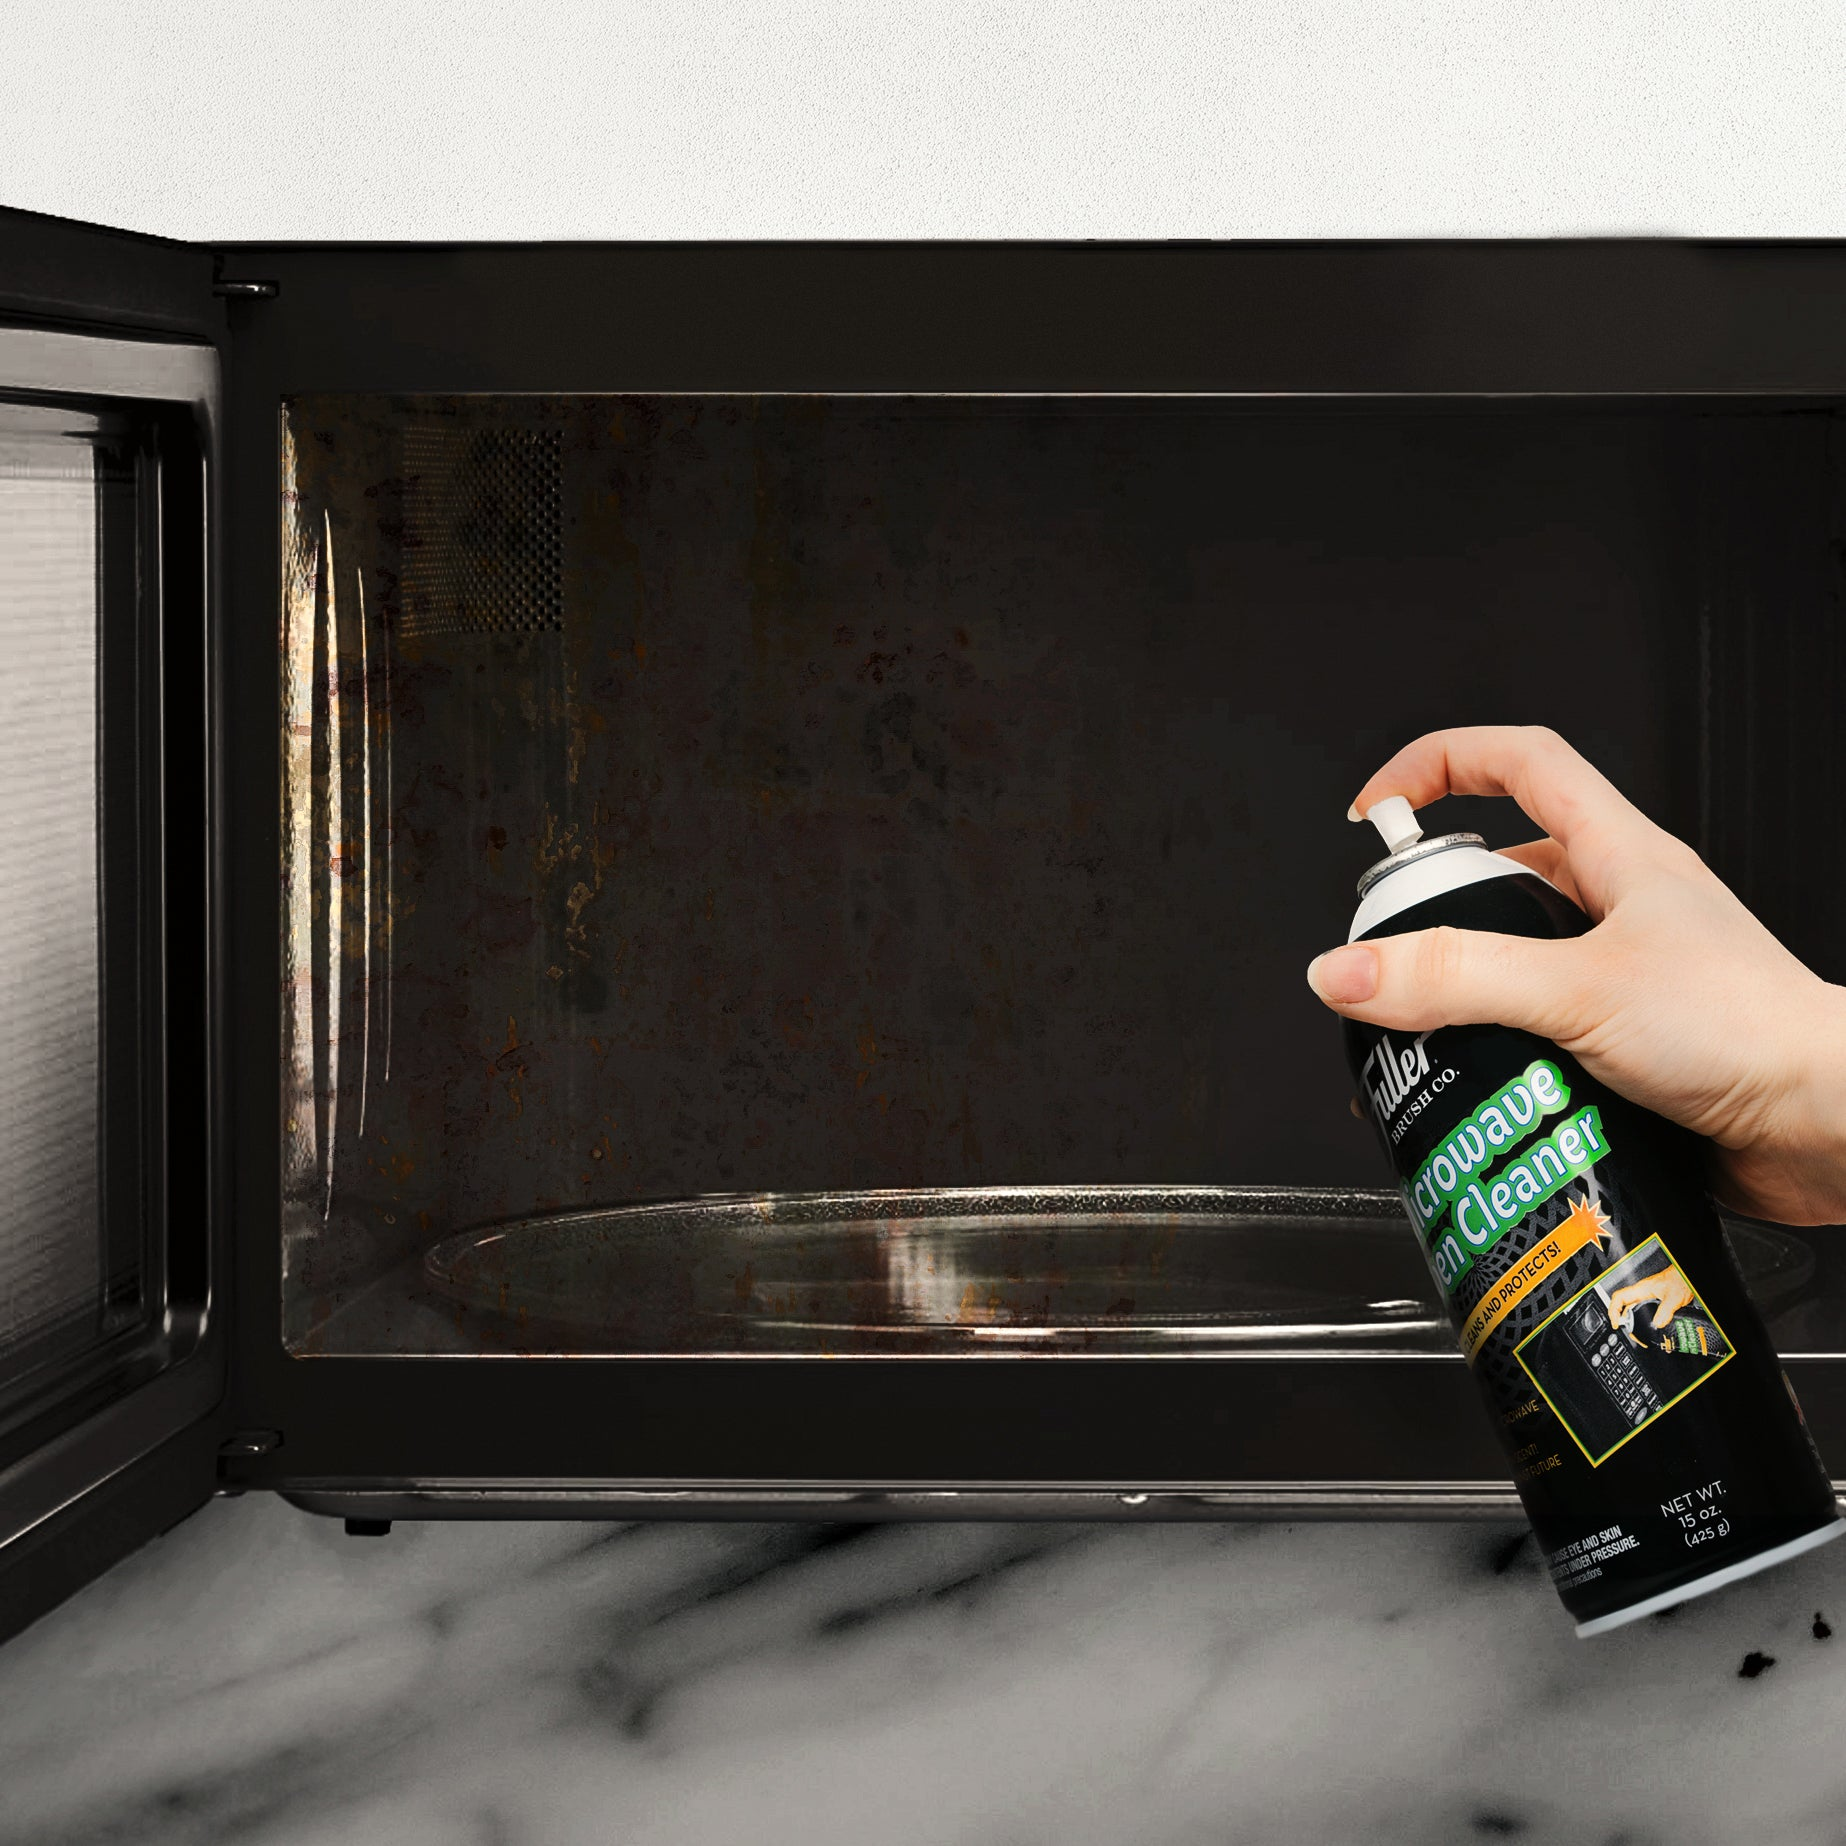 Microwave Oven Cleaner Lemon Scented Spray Foam. Removes Food and Grease